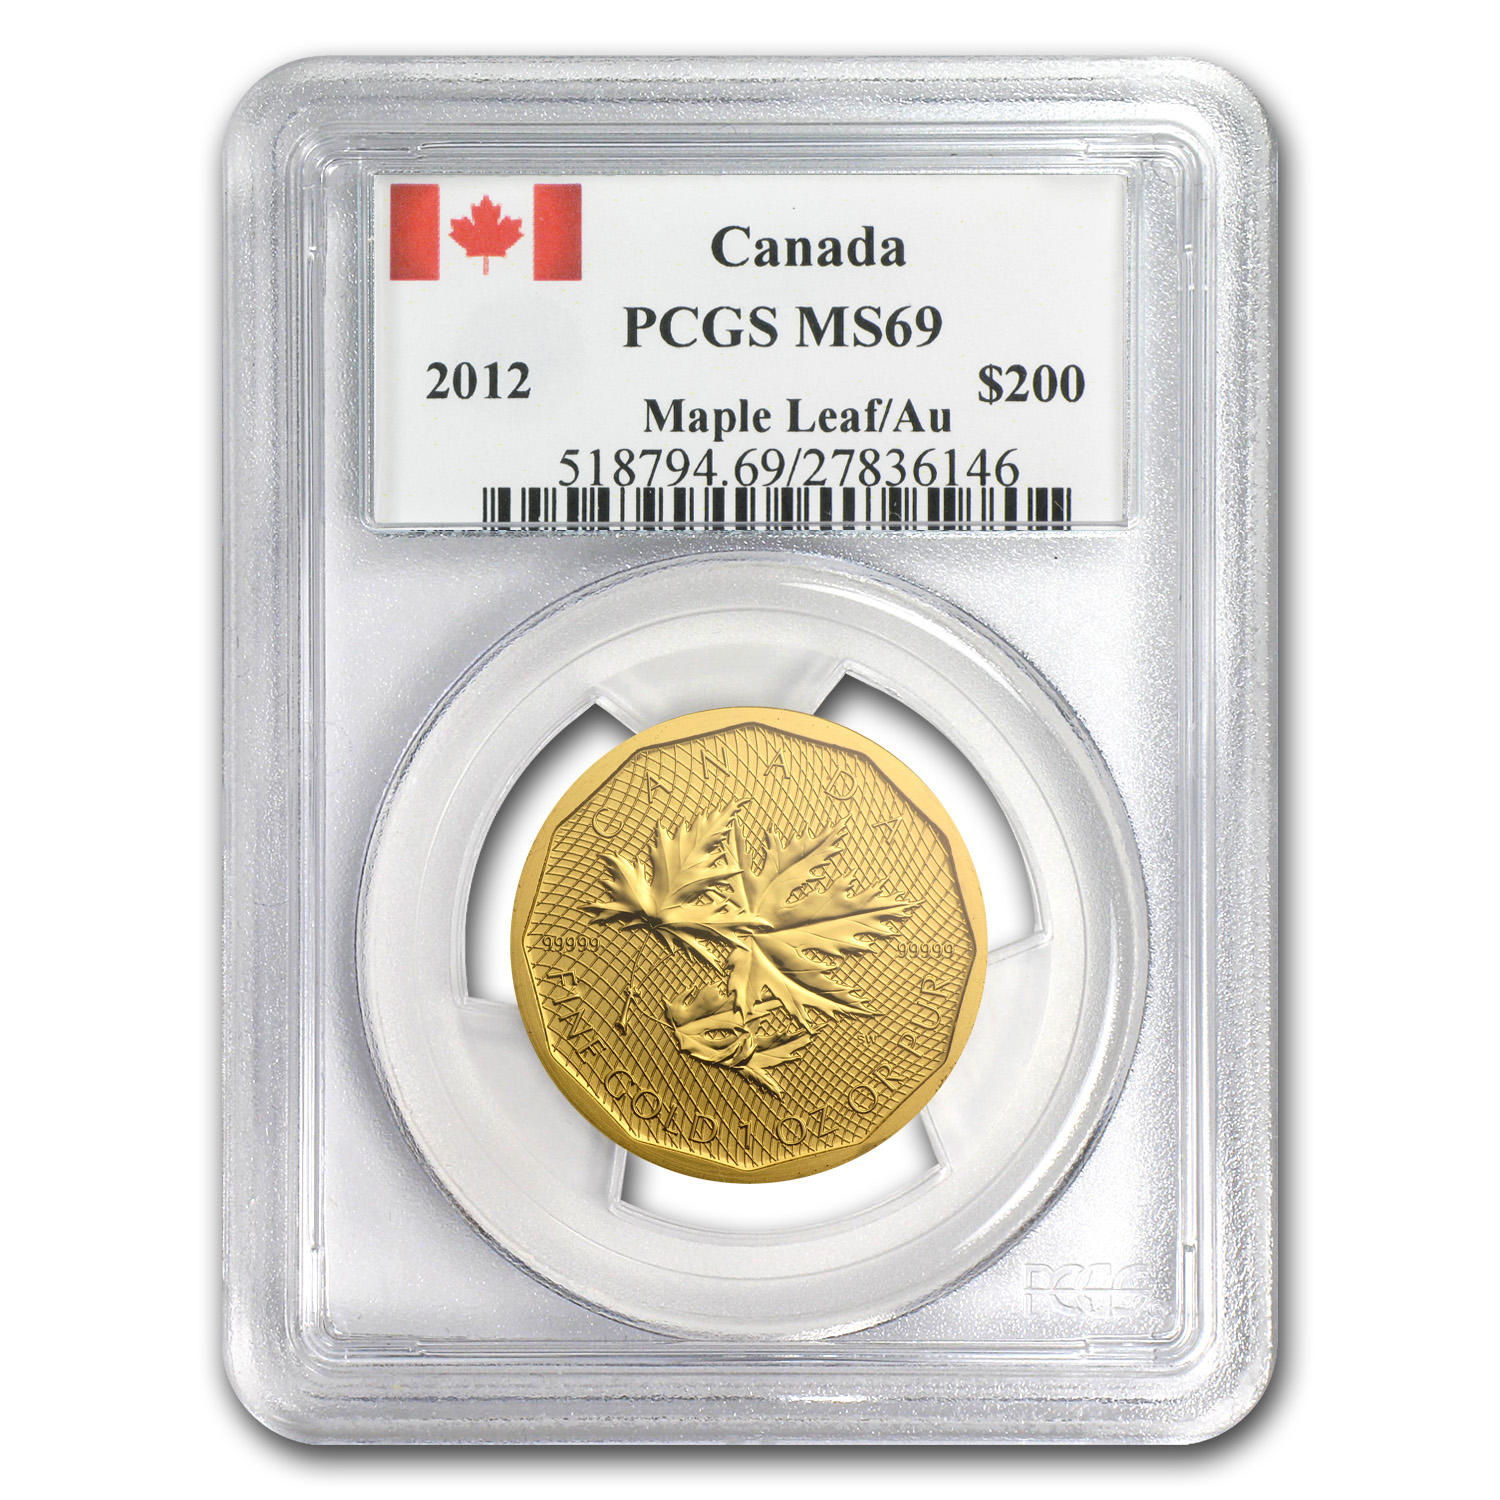 2012 1 oz Gold Canadian Maple Leaf .99999 Fine PCGS MS-69